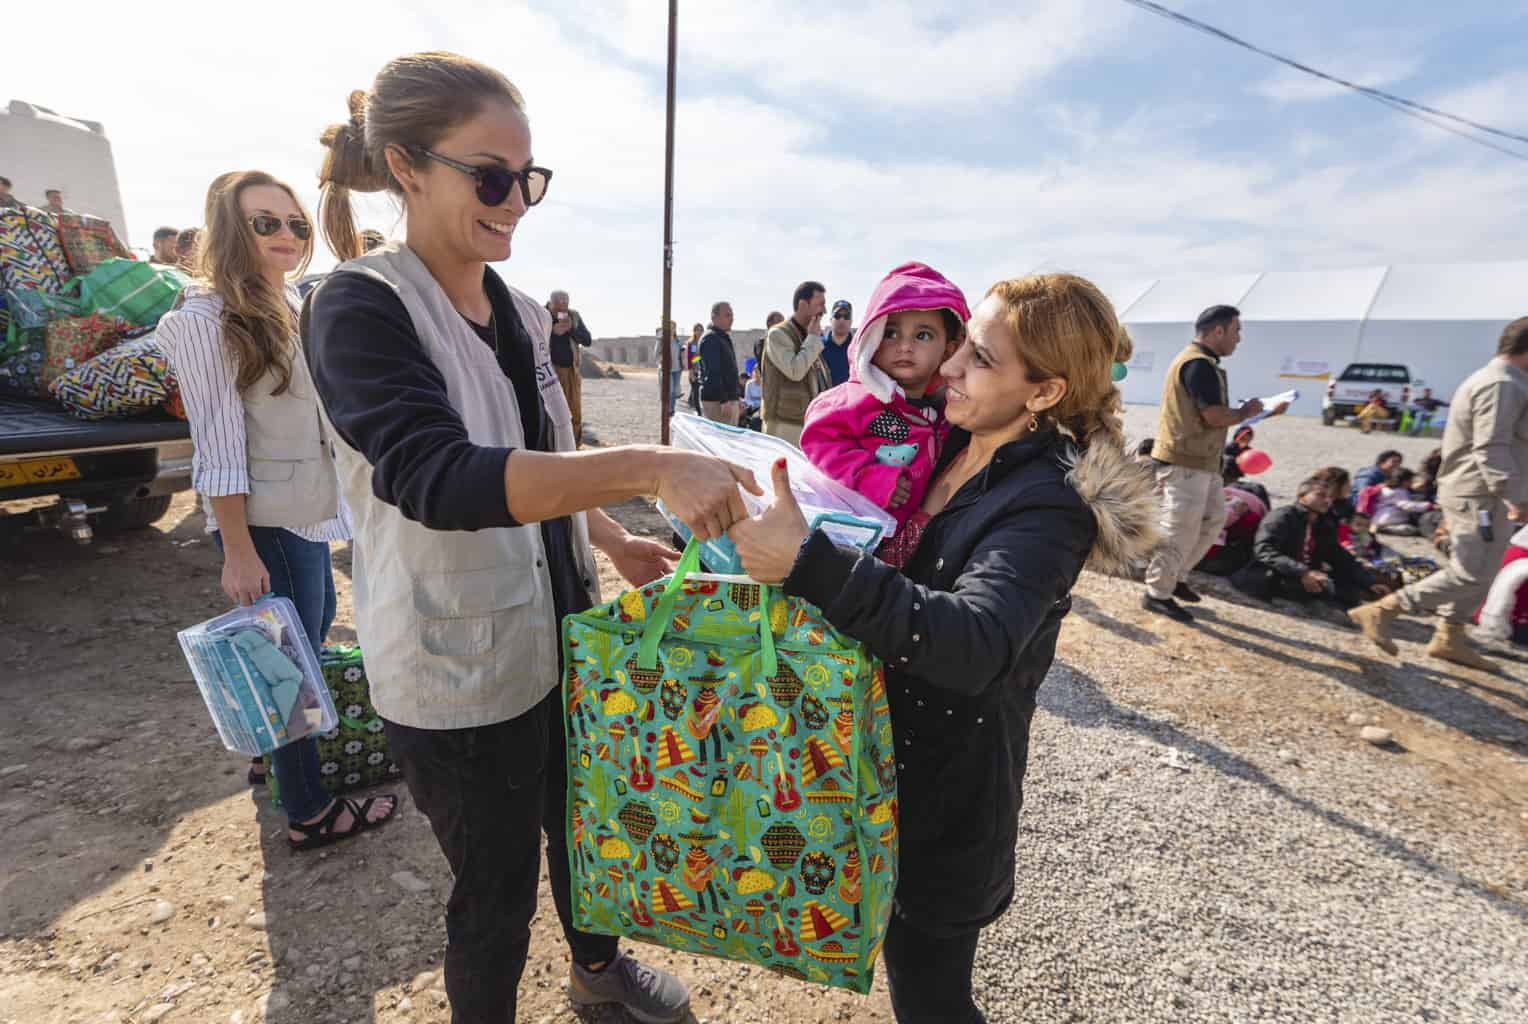 A Samaritan's Purse staff member hands out dignity and hygiene kits to Syrian refugees at Sehela transit center.